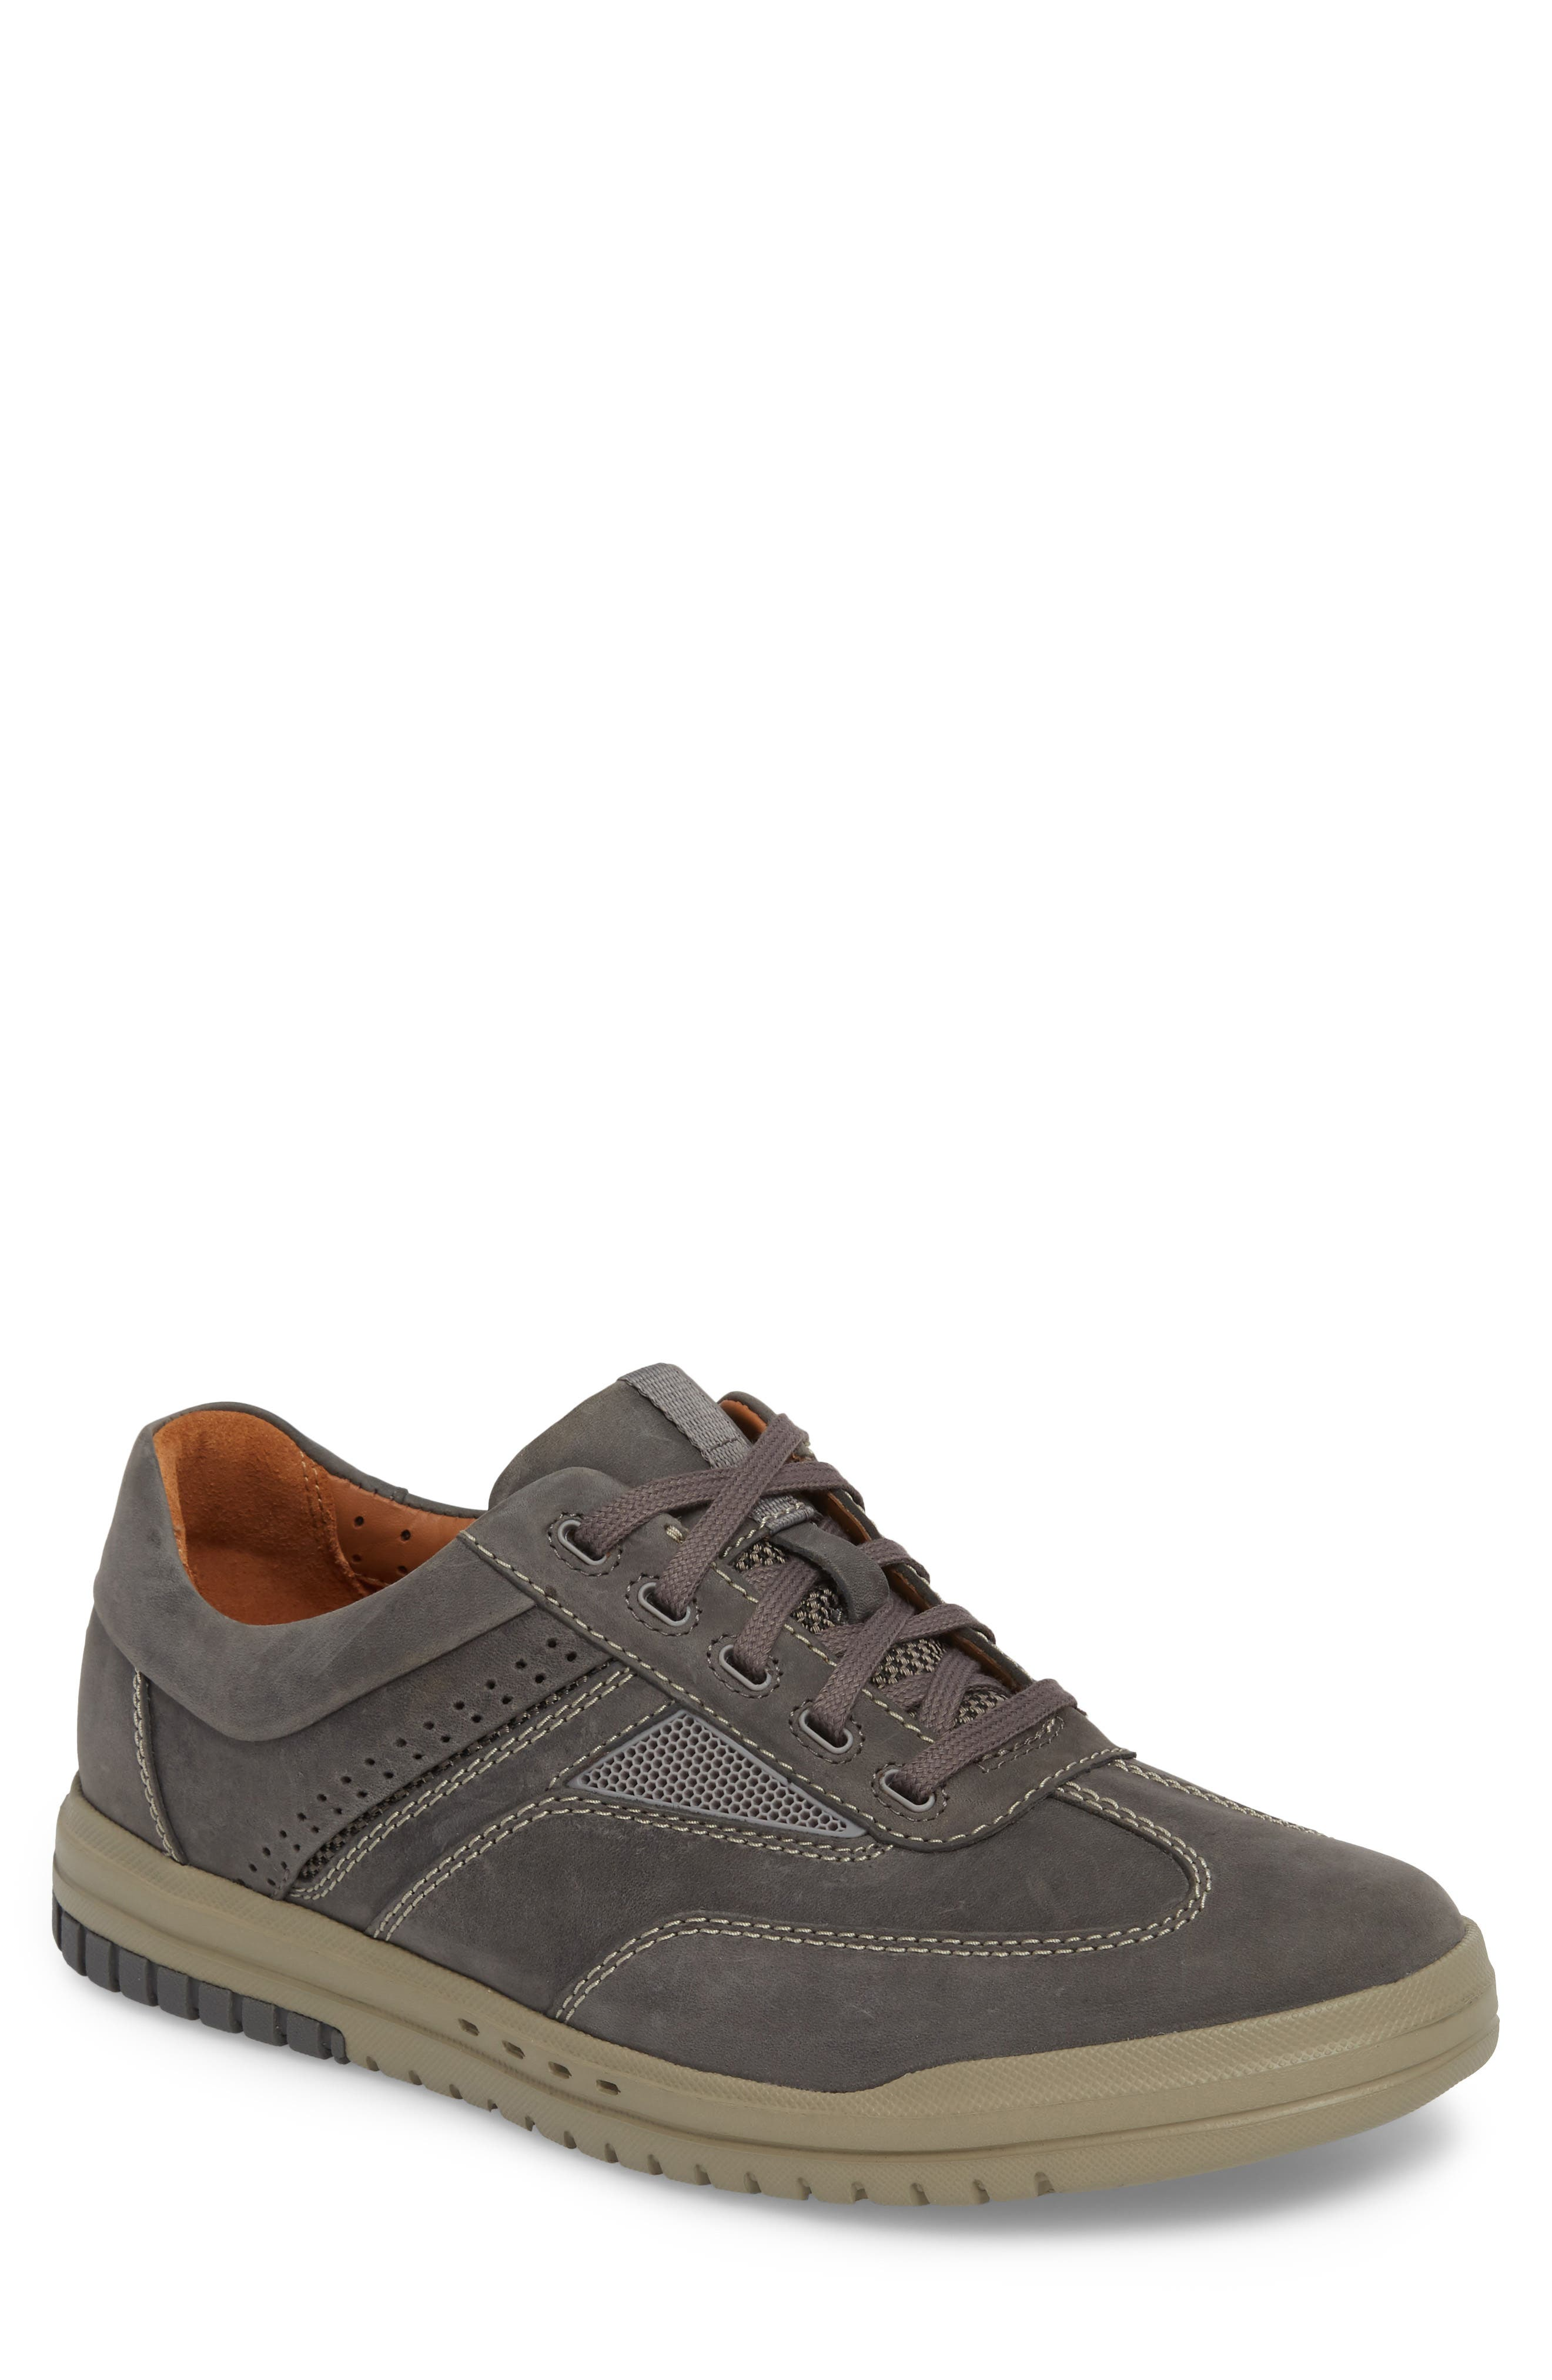 Originals Unrhombus Low Top Sneaker,                         Main,                         color, 021